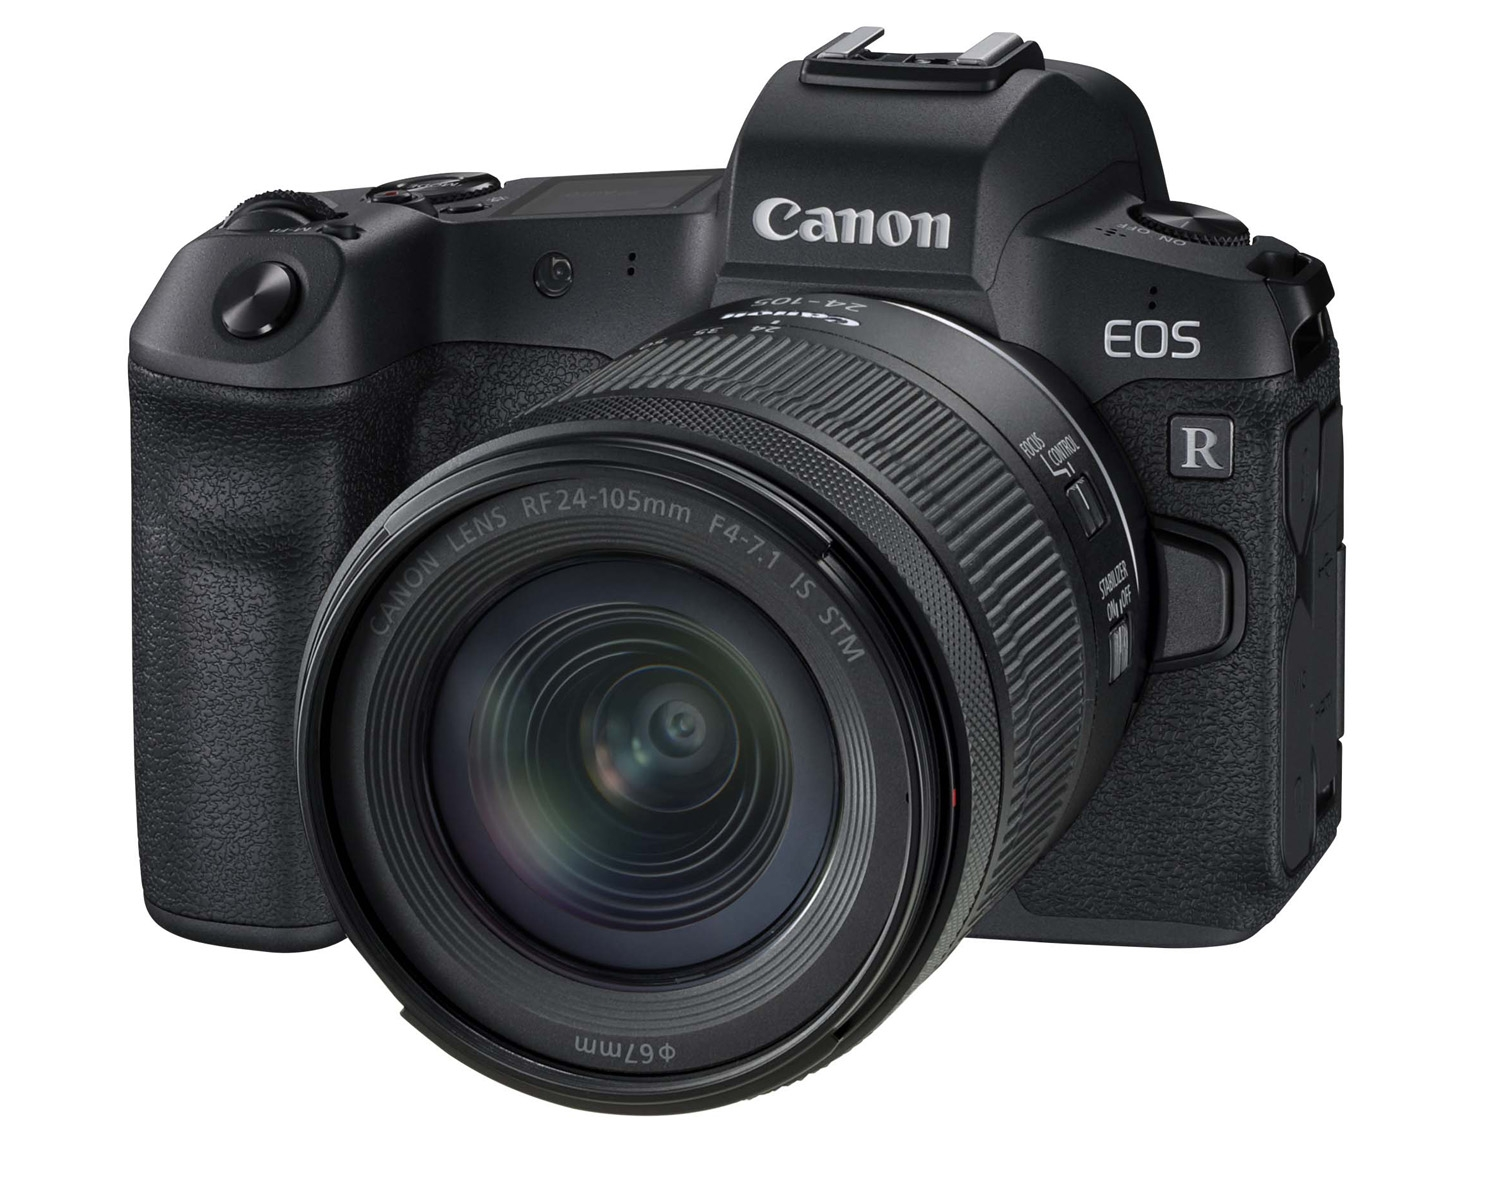 Canon EOS R Mirrorless Camera with 24-105mm f4-7.1 RF IS STM Lens